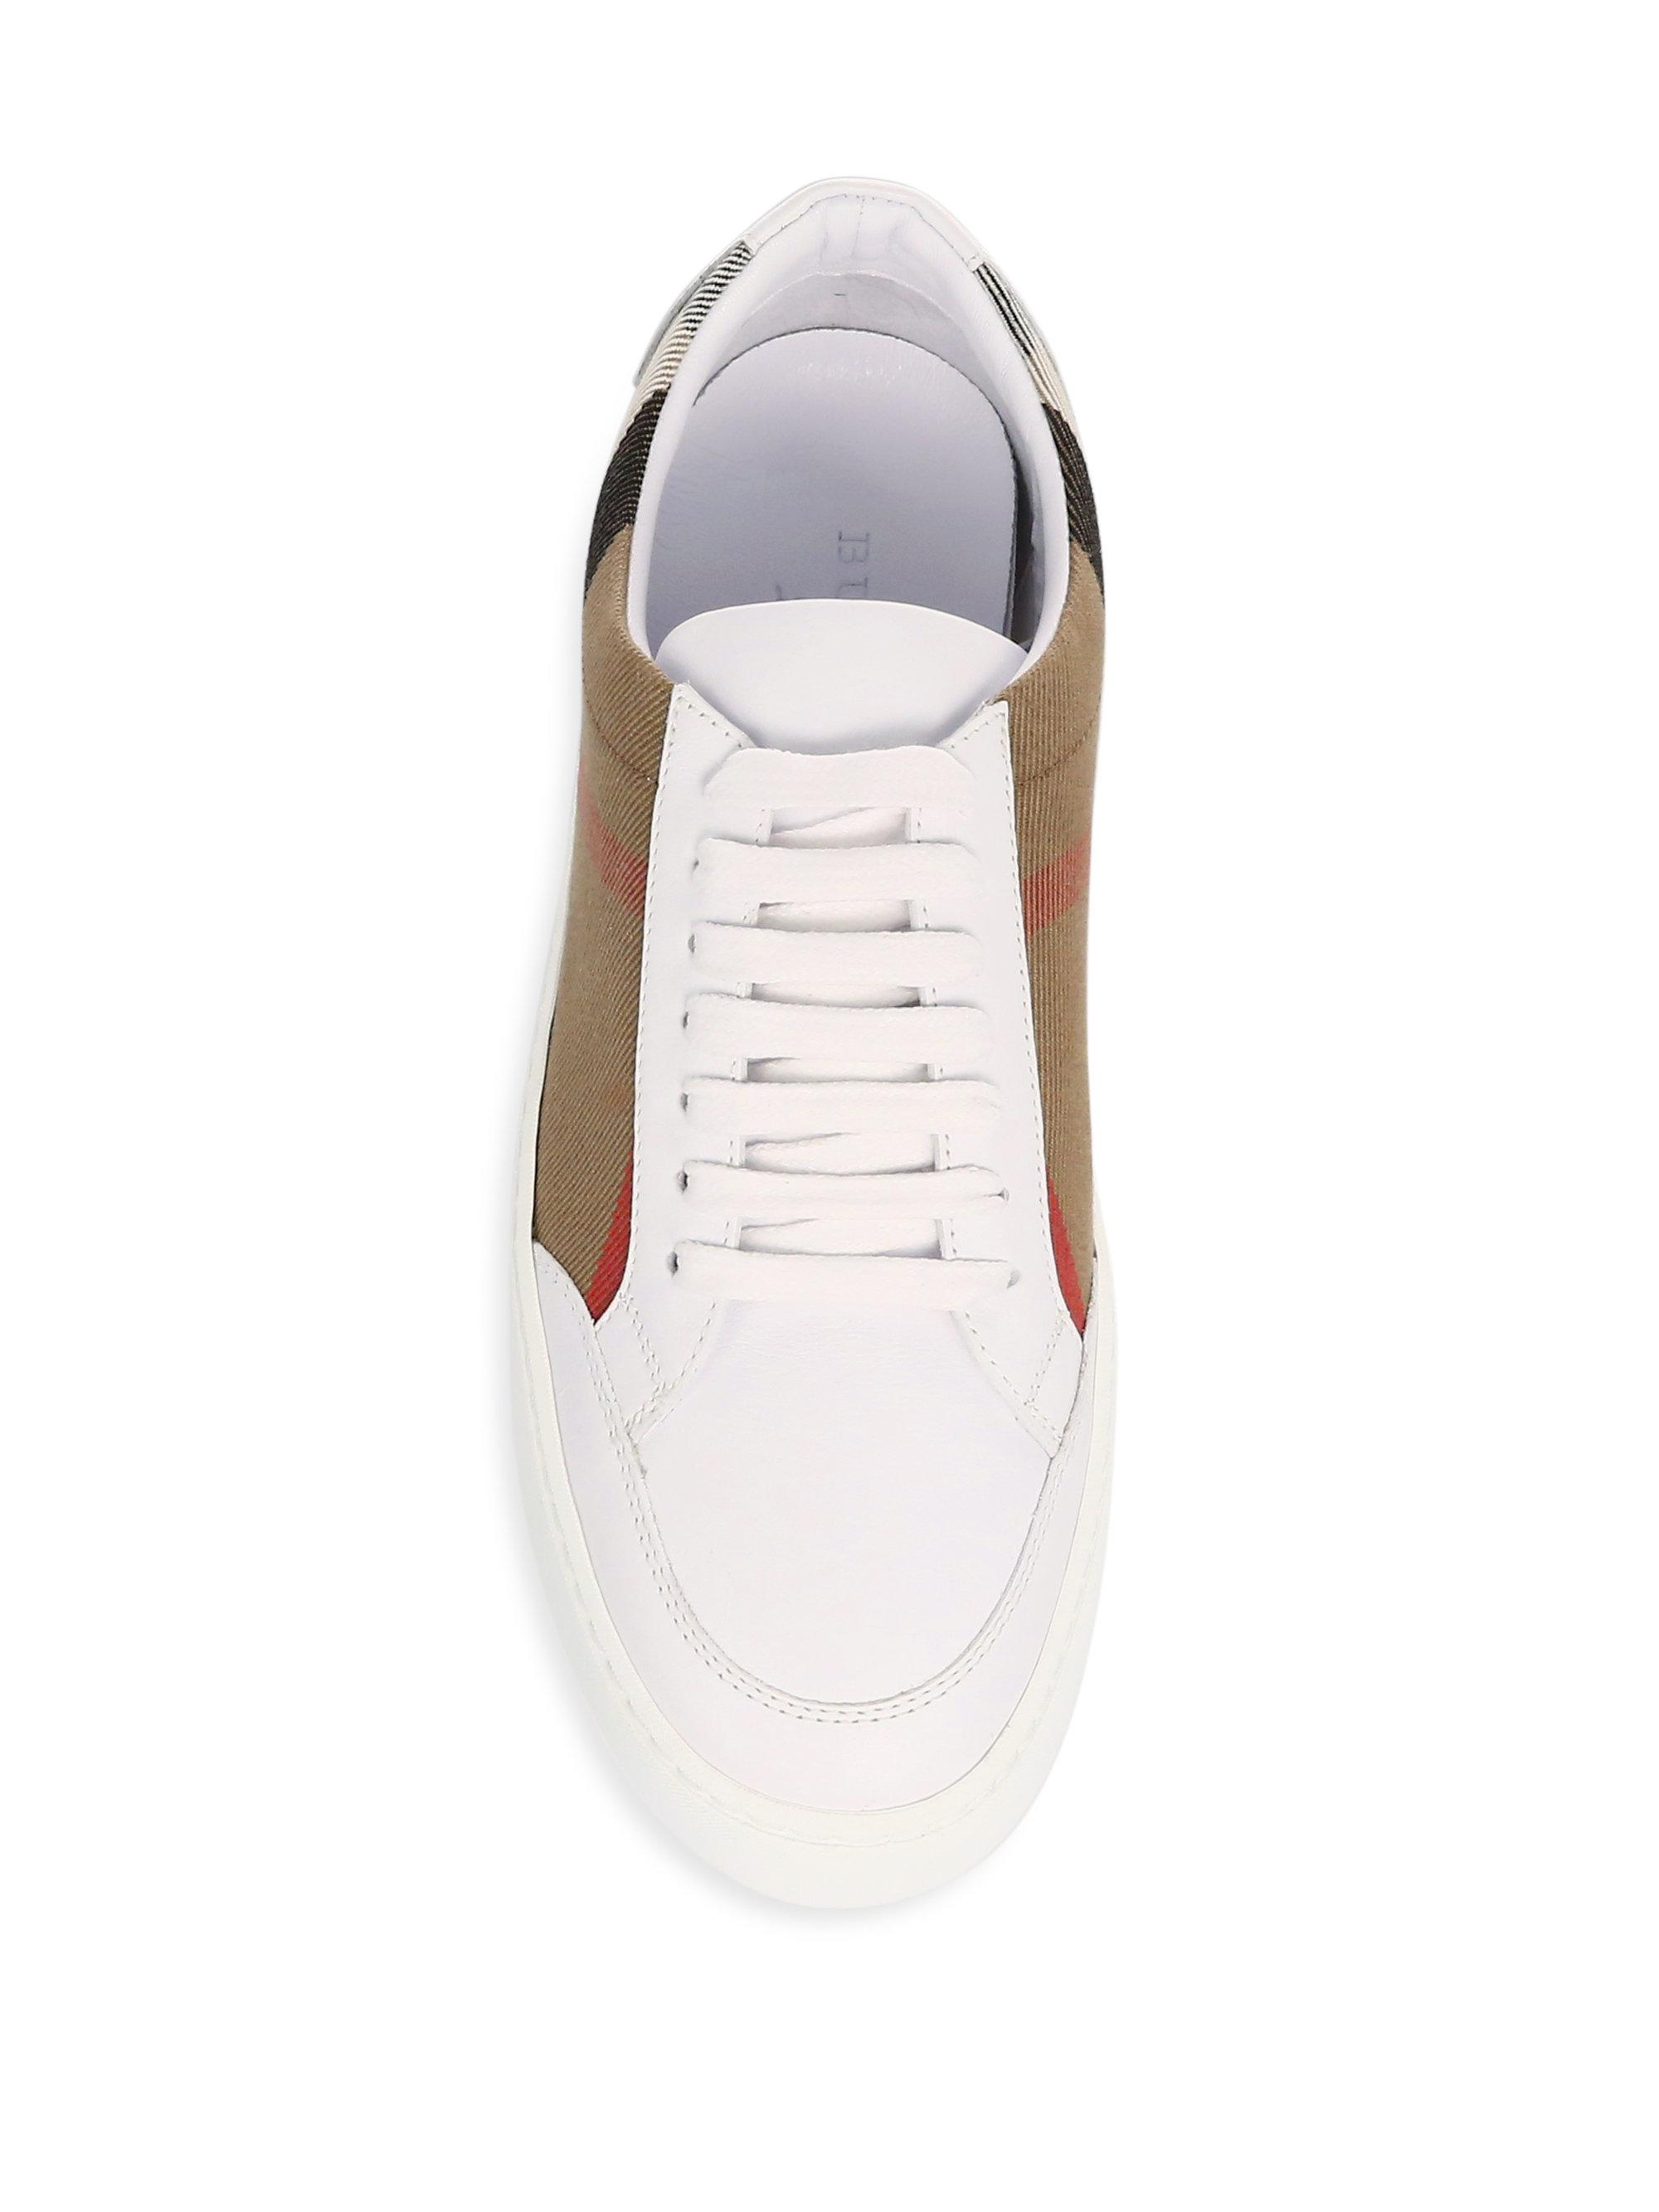 157e3ca546a00 burberry-optic-white-Salmond-Low-top-Leather-Sneakers.jpeg